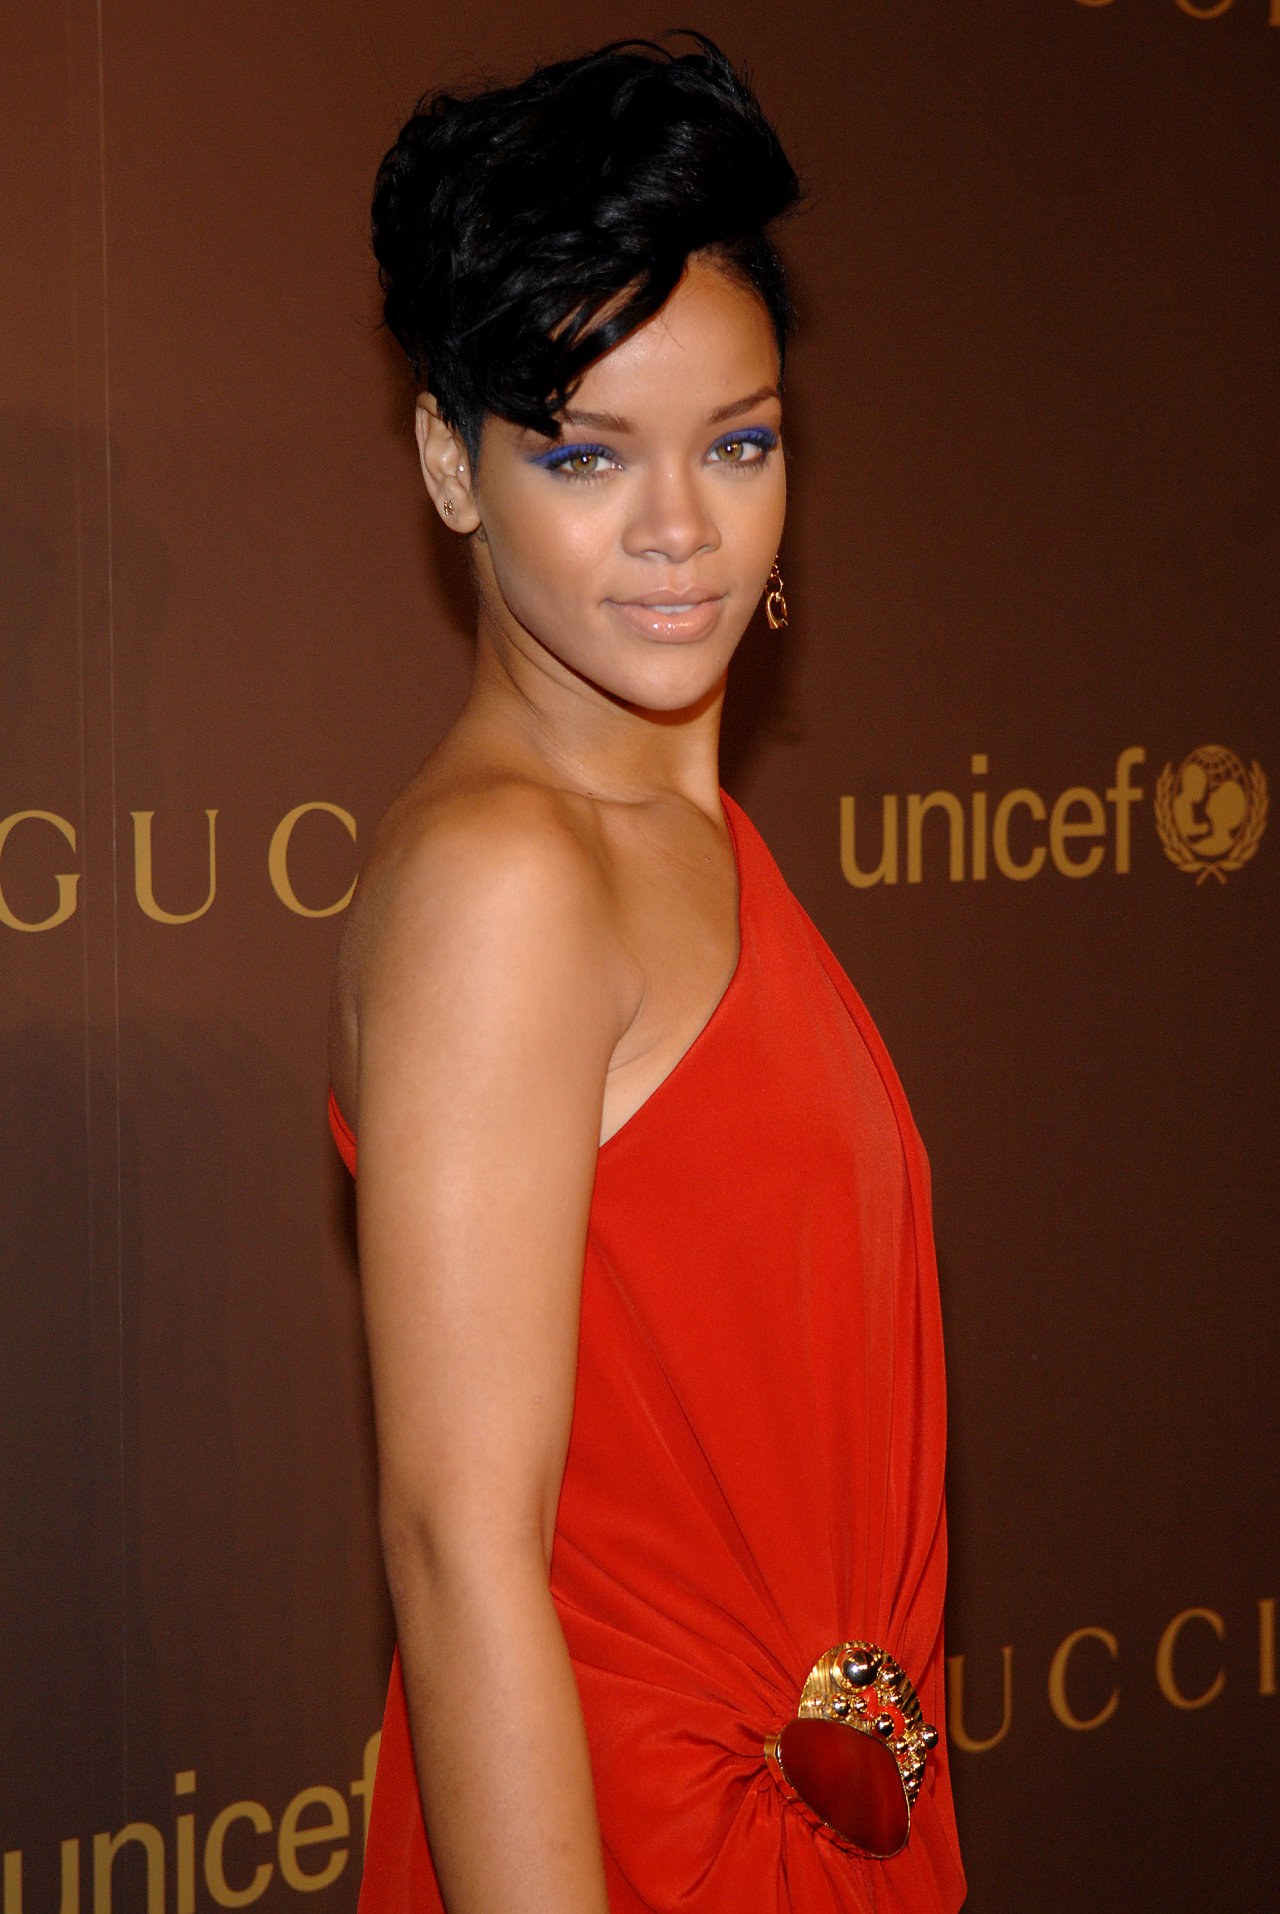 Rihanna leaked wallpapers